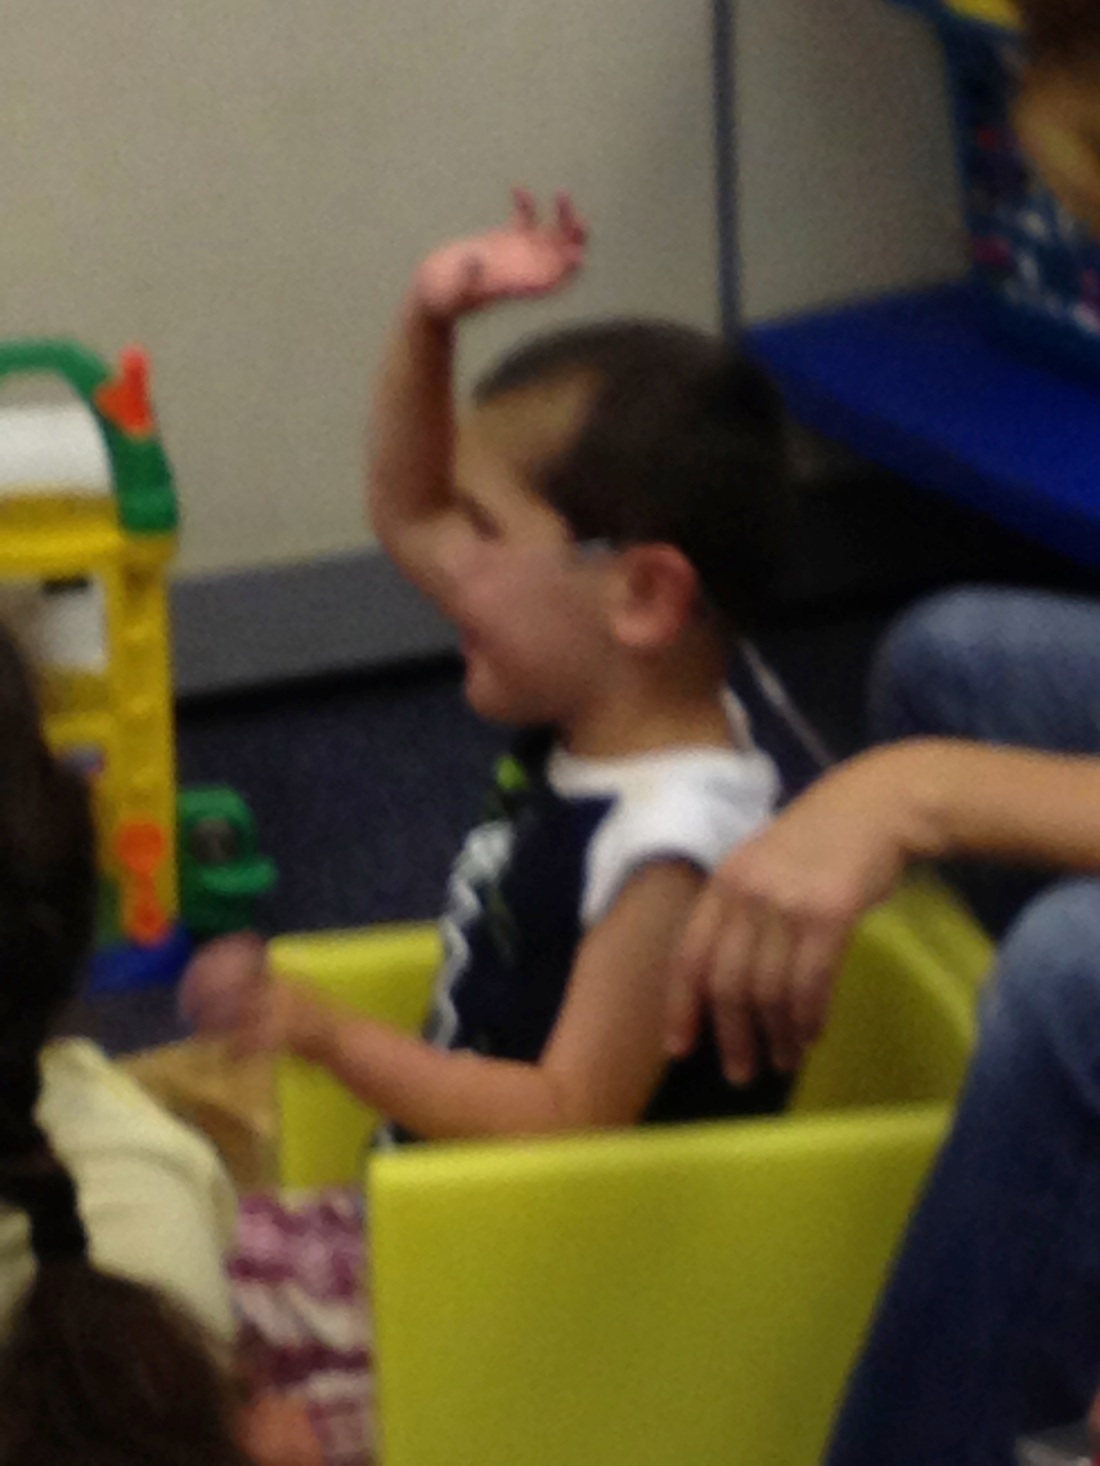 Rudy politely raising his hand and waiting his turn to lead a song during circle time!